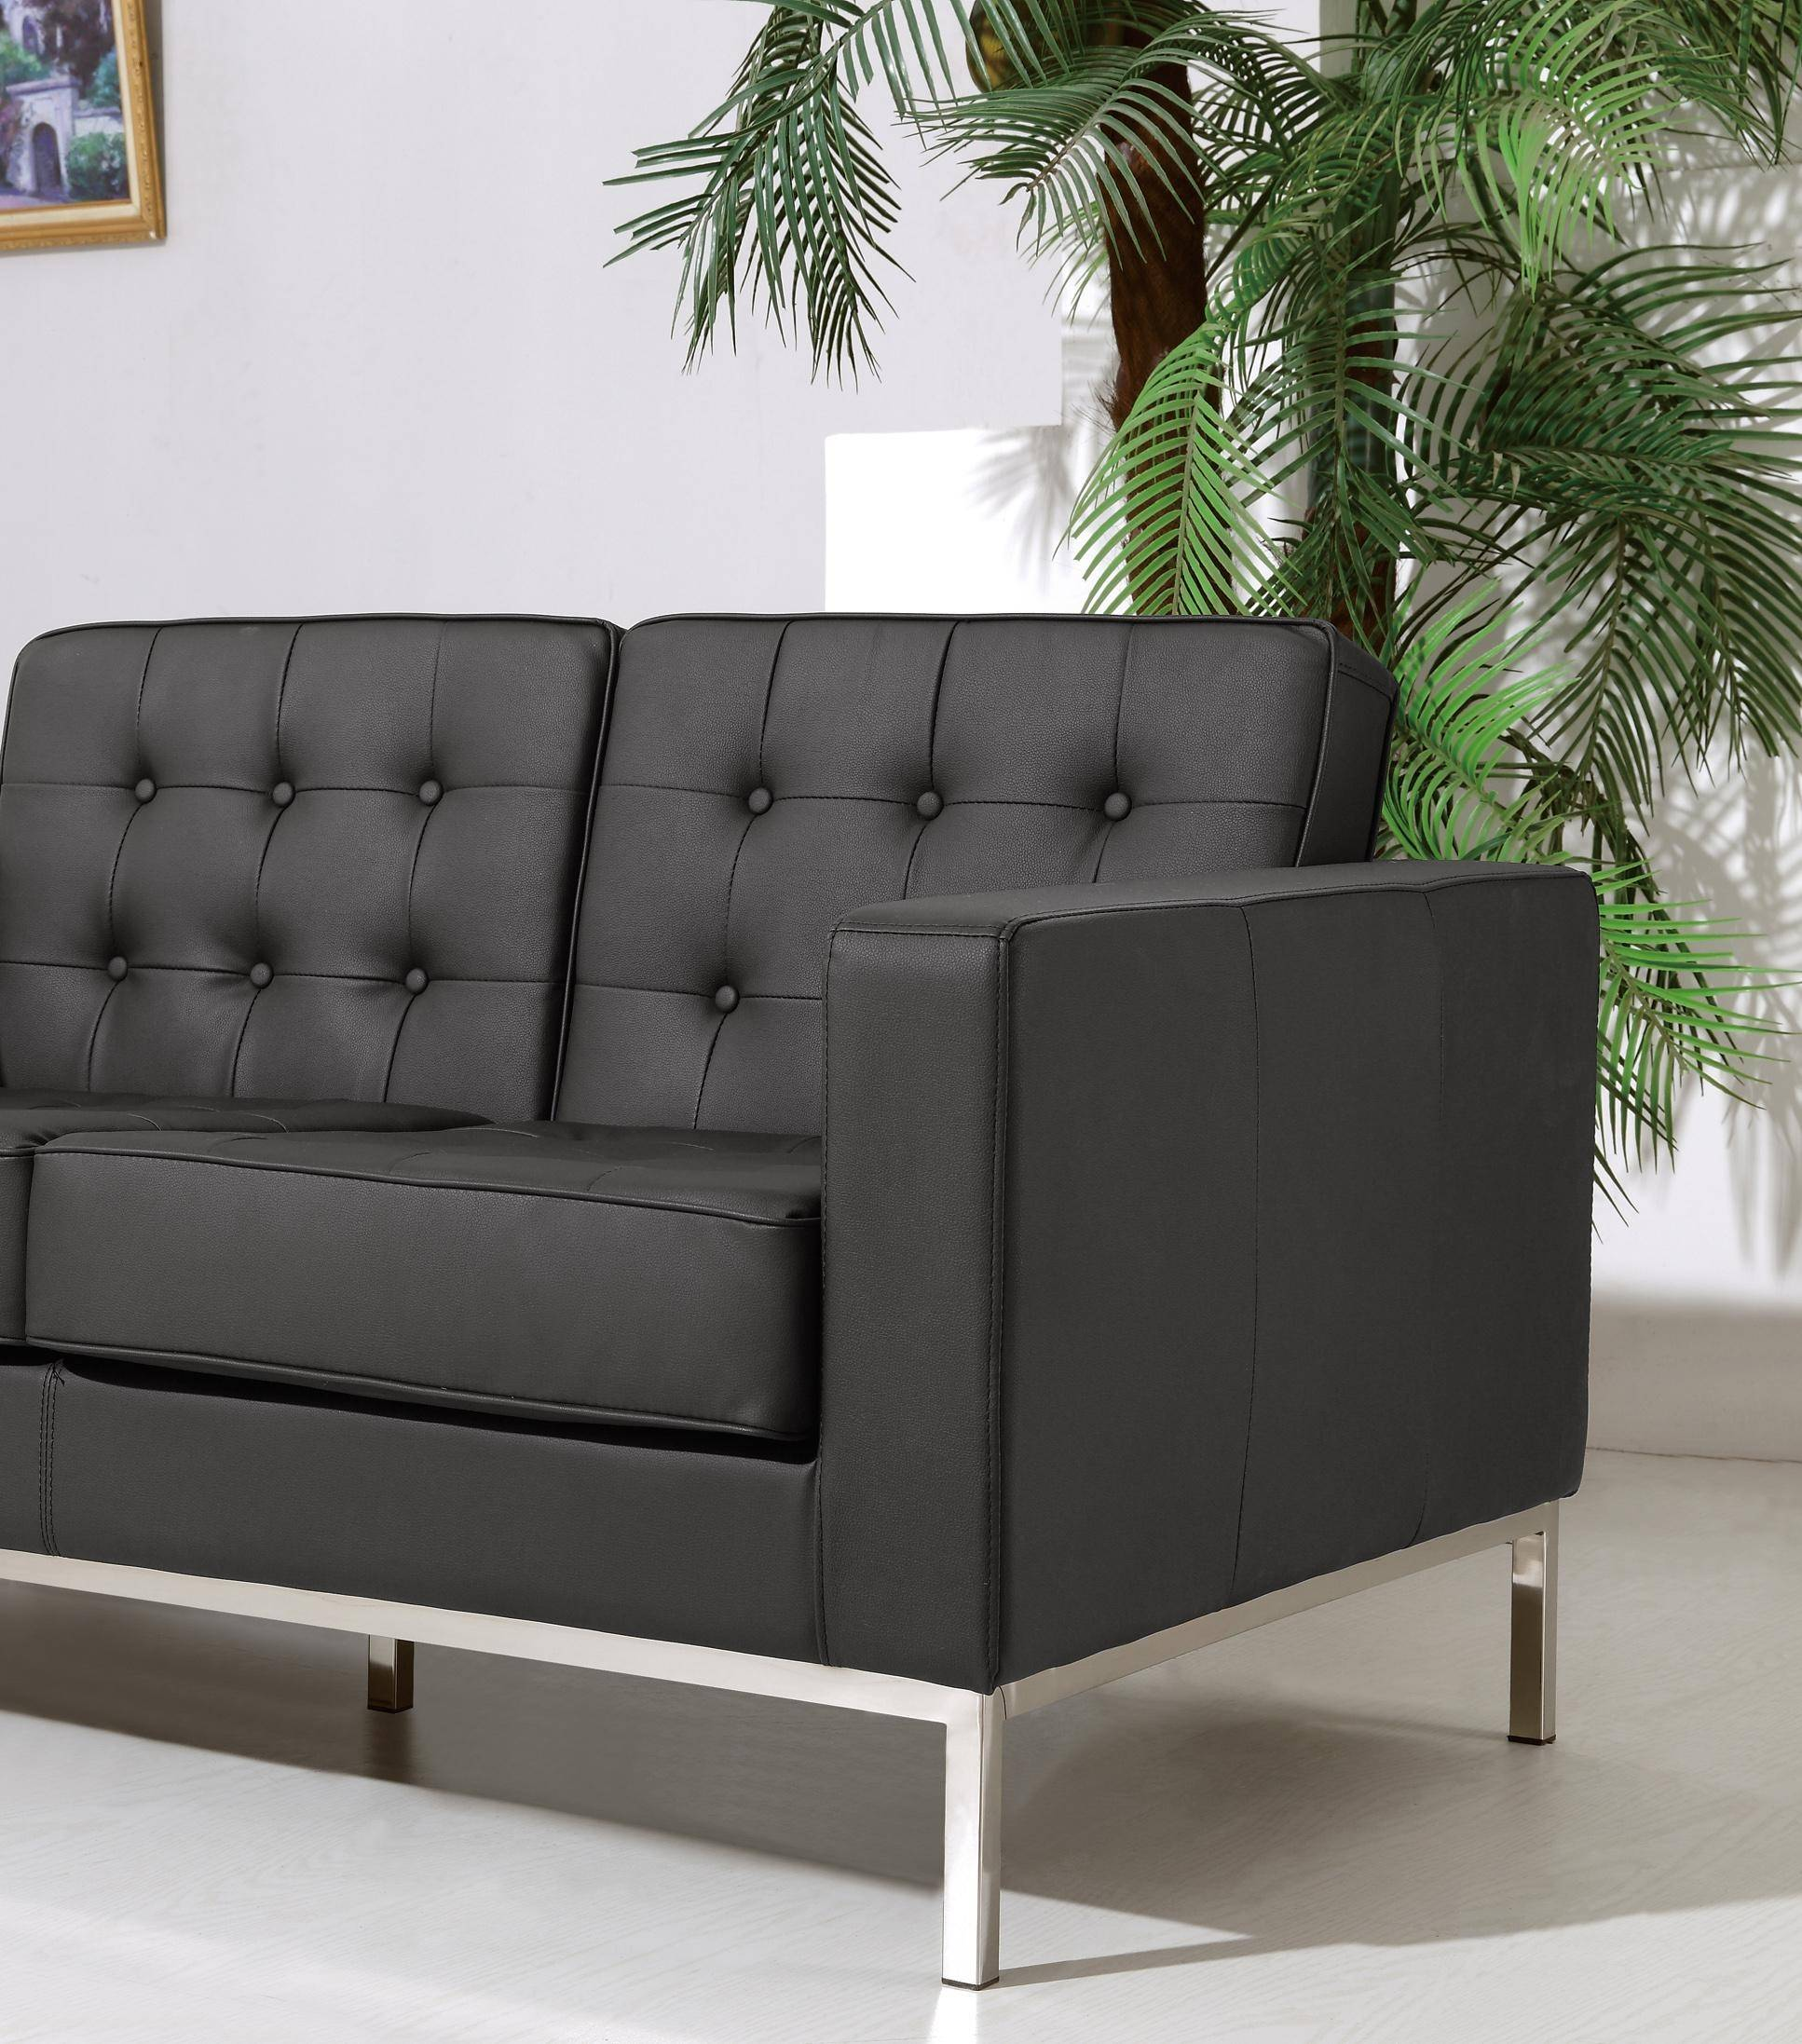 Surprising At Home Usa Silvania Genuine Rich Black Leather Tufted Loveseat Contemporary Short Links Chair Design For Home Short Linksinfo